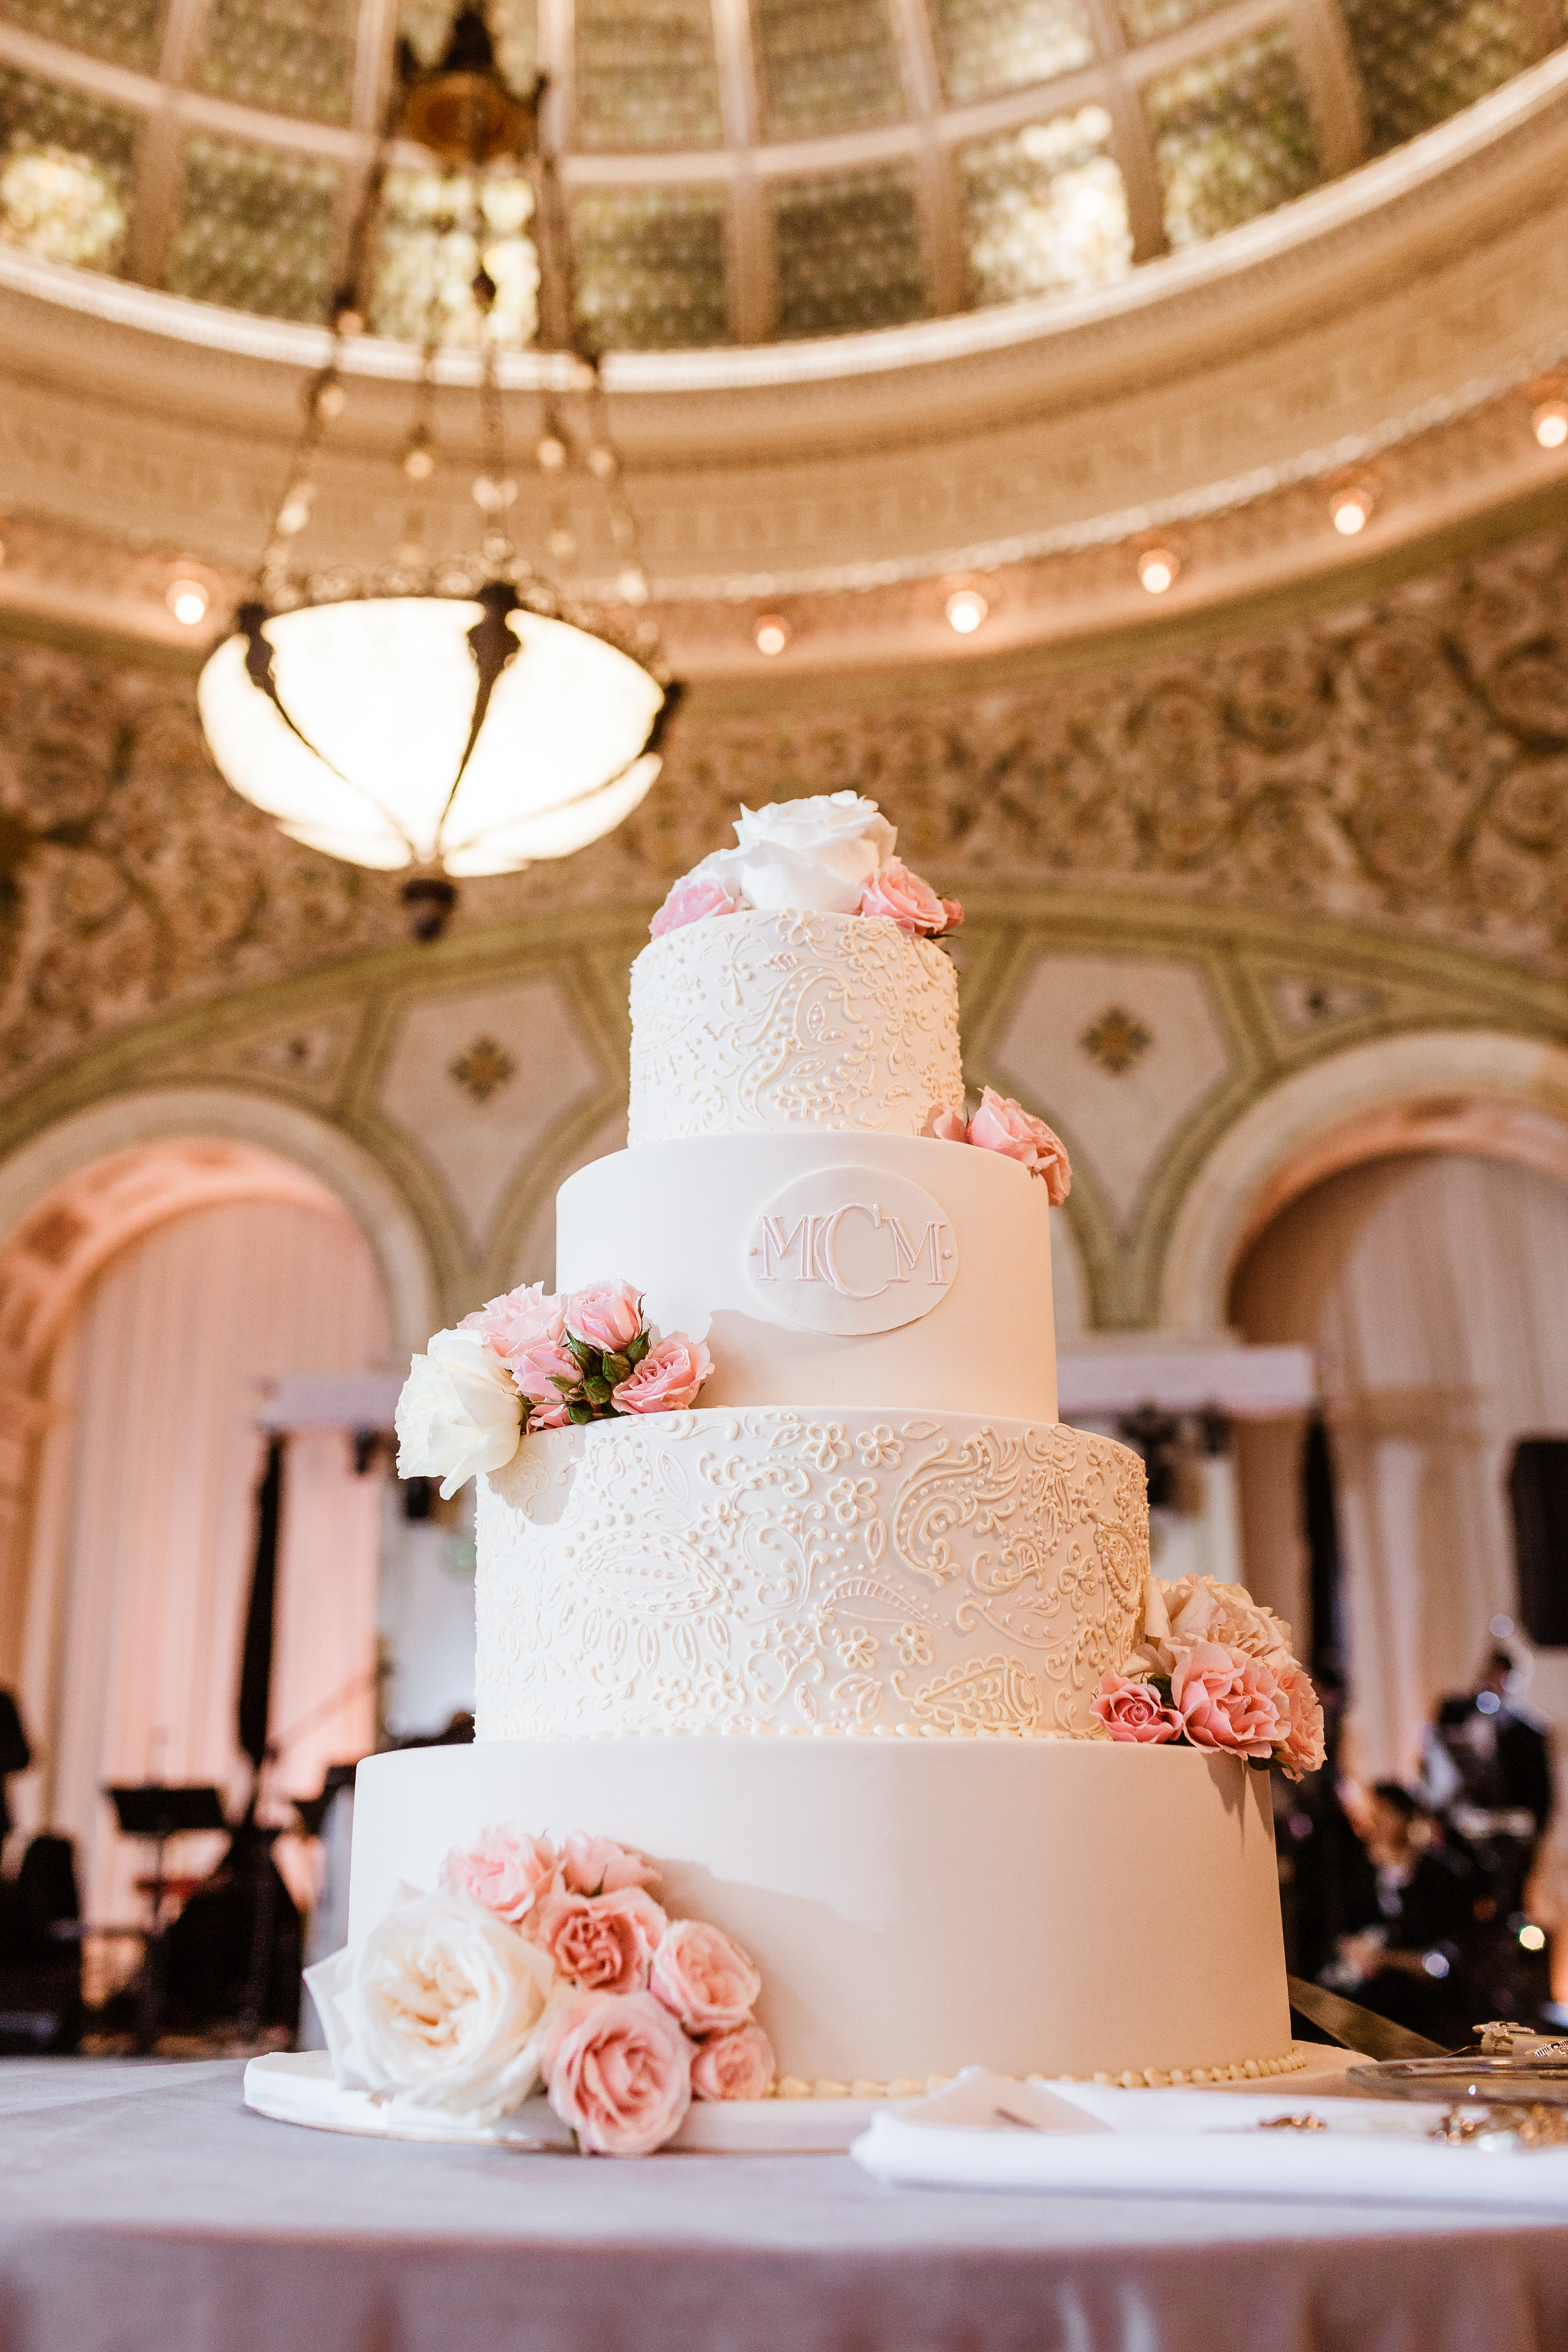 Cake under the Tiffany dome at the Chicago Cultural Center